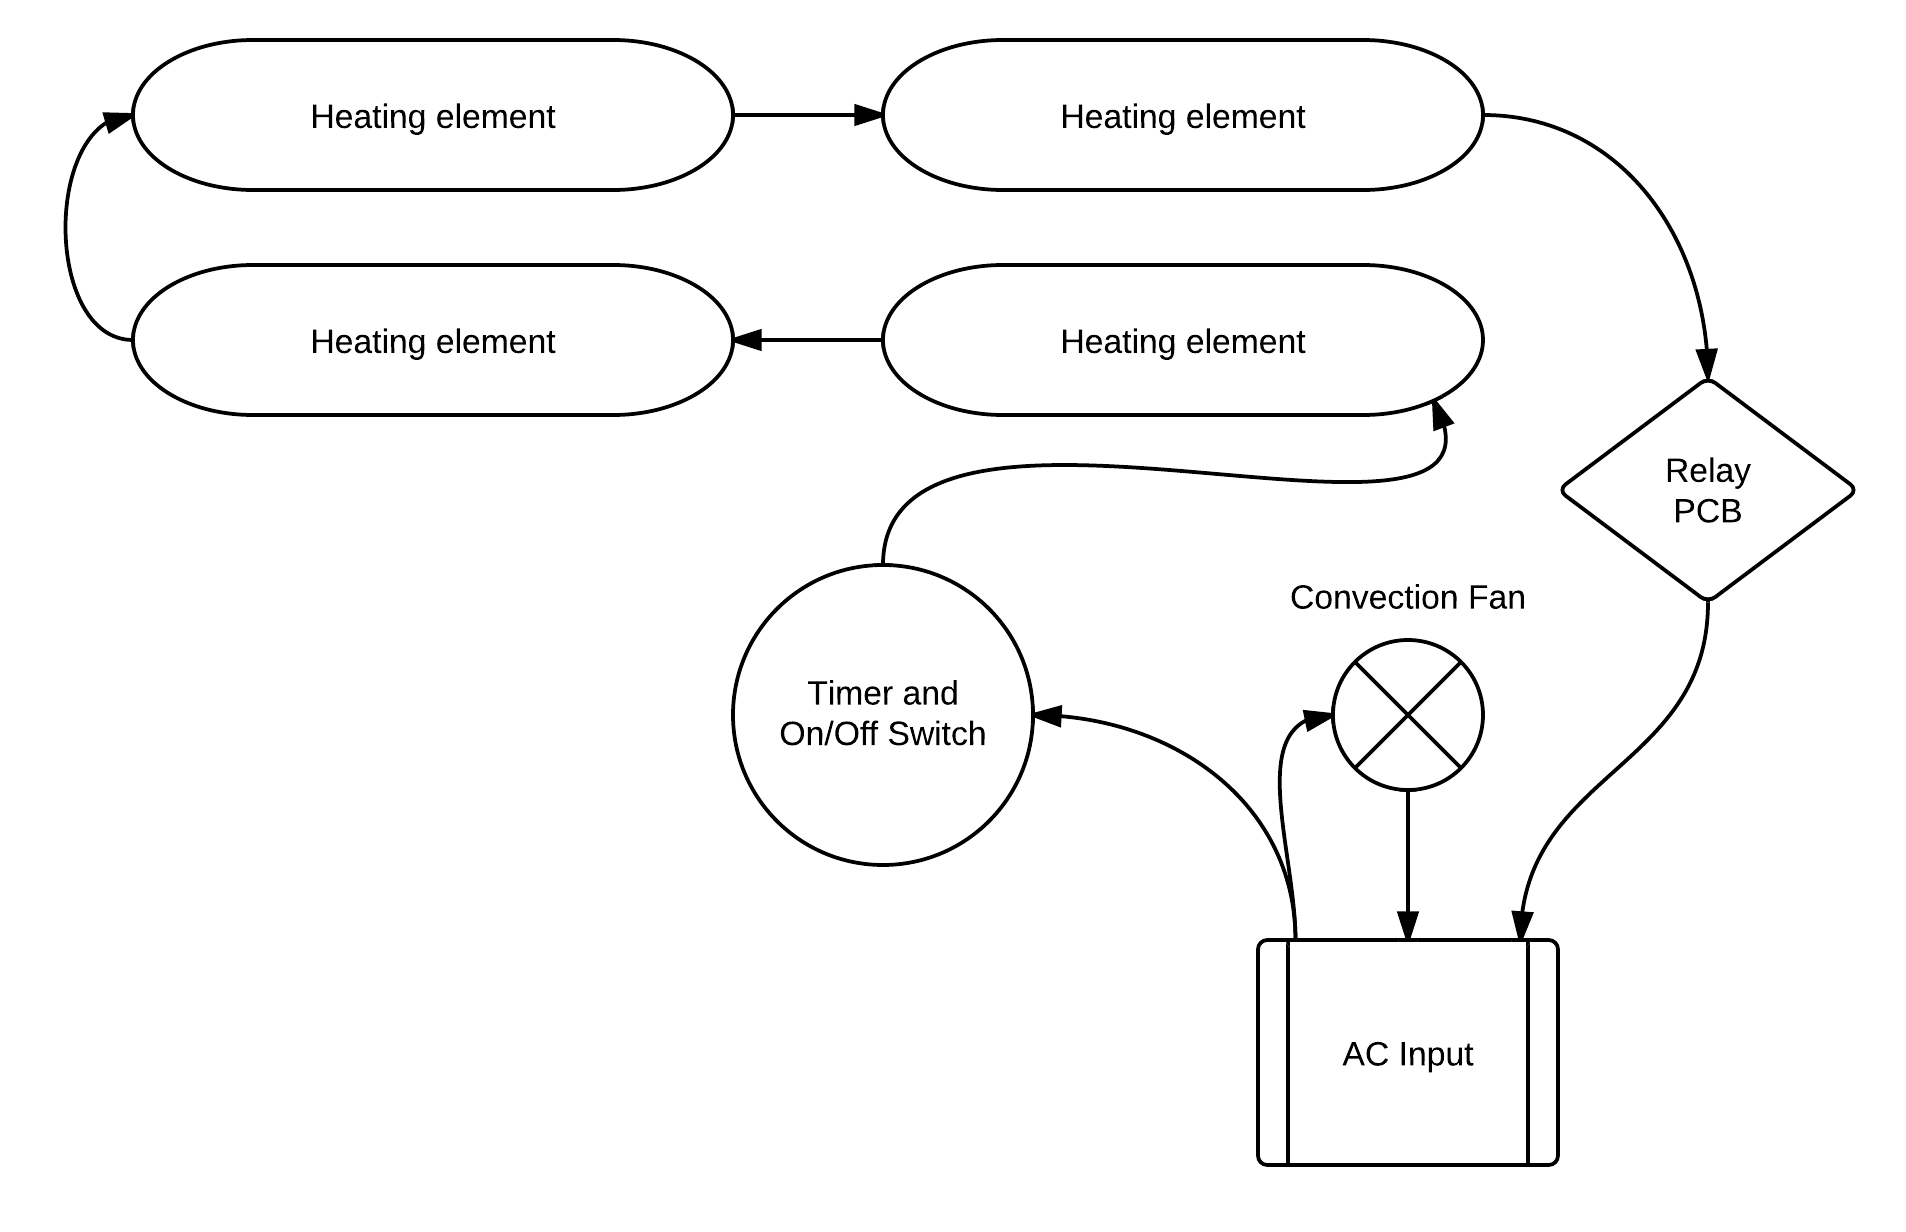 OvenInternalFlowChart?resize=665%2C430 blodgett convection oven wiring diagrams wiring diagram Simple Wiring Diagrams at gsmx.co